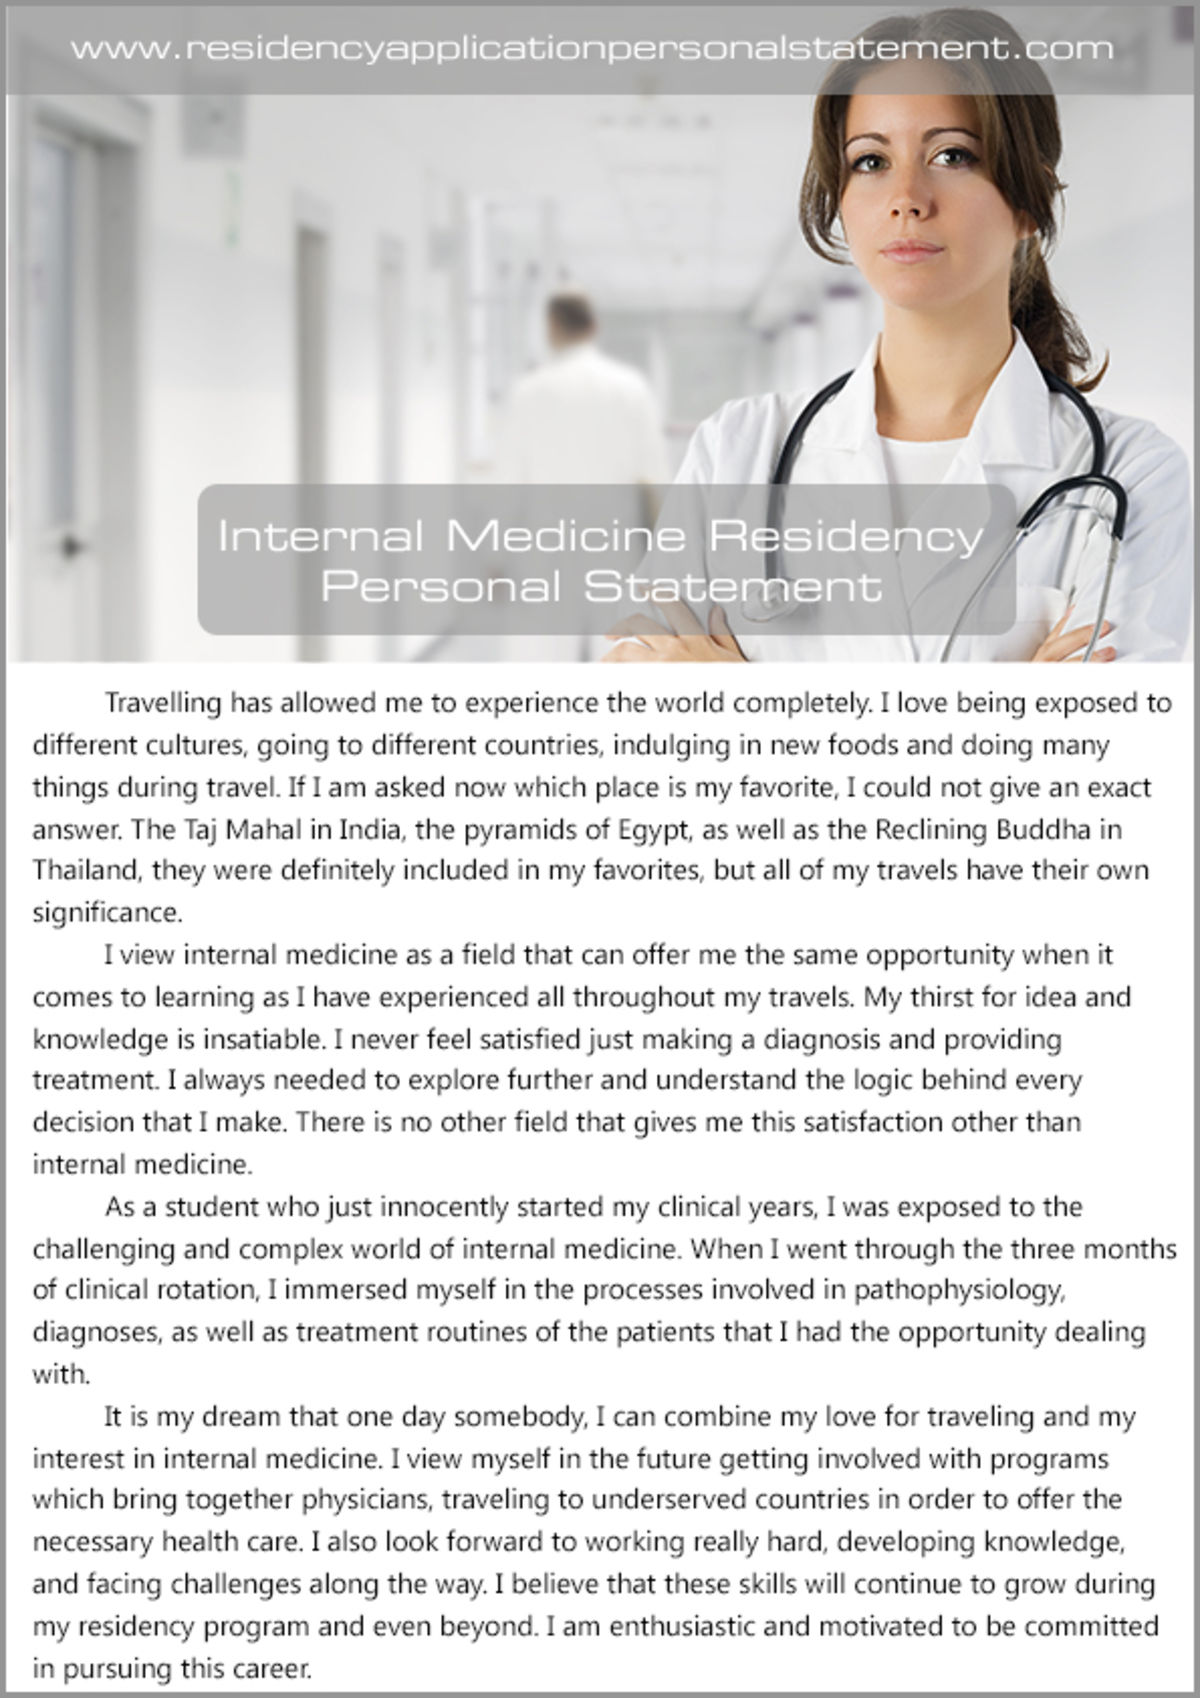 personal statement for residency internal medicine